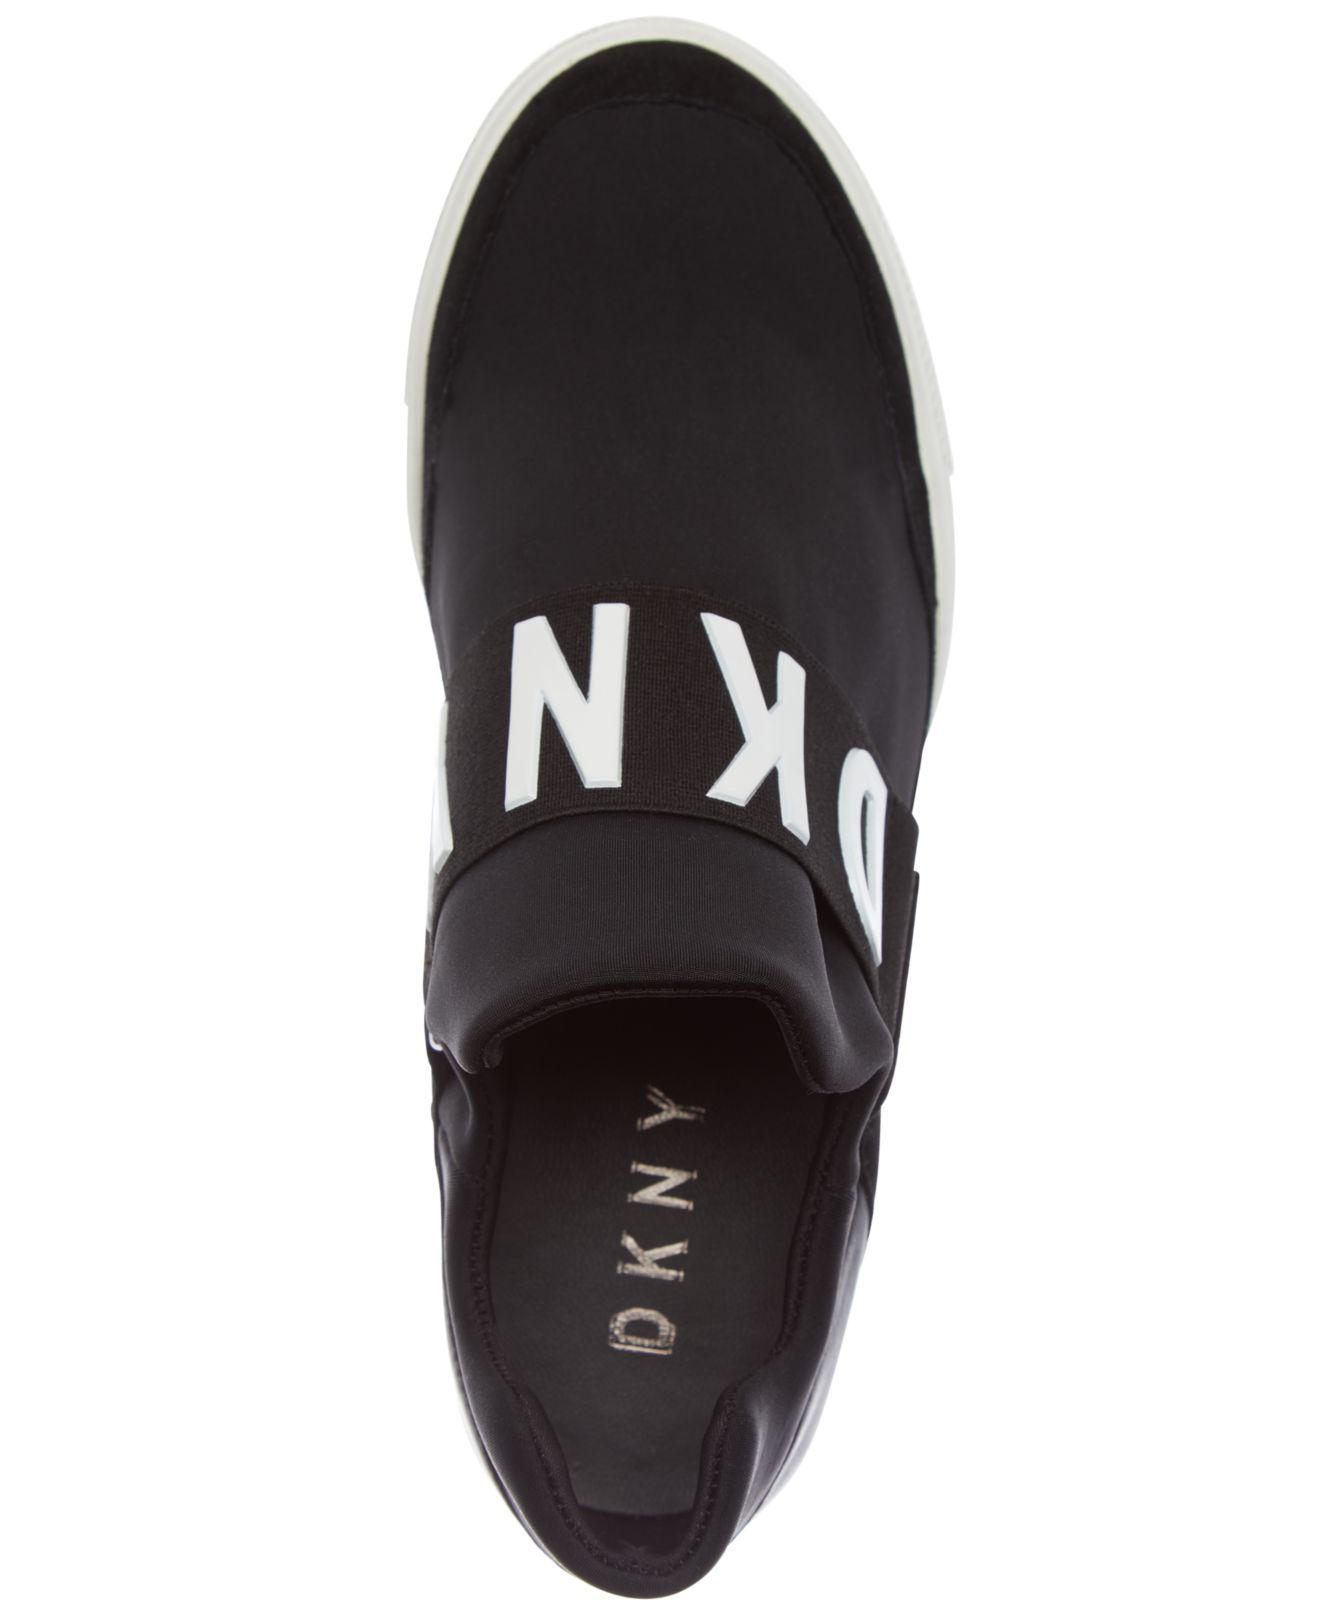 8779d12dcf7 Lyst - DKNY Cosmos Platform Sneakers